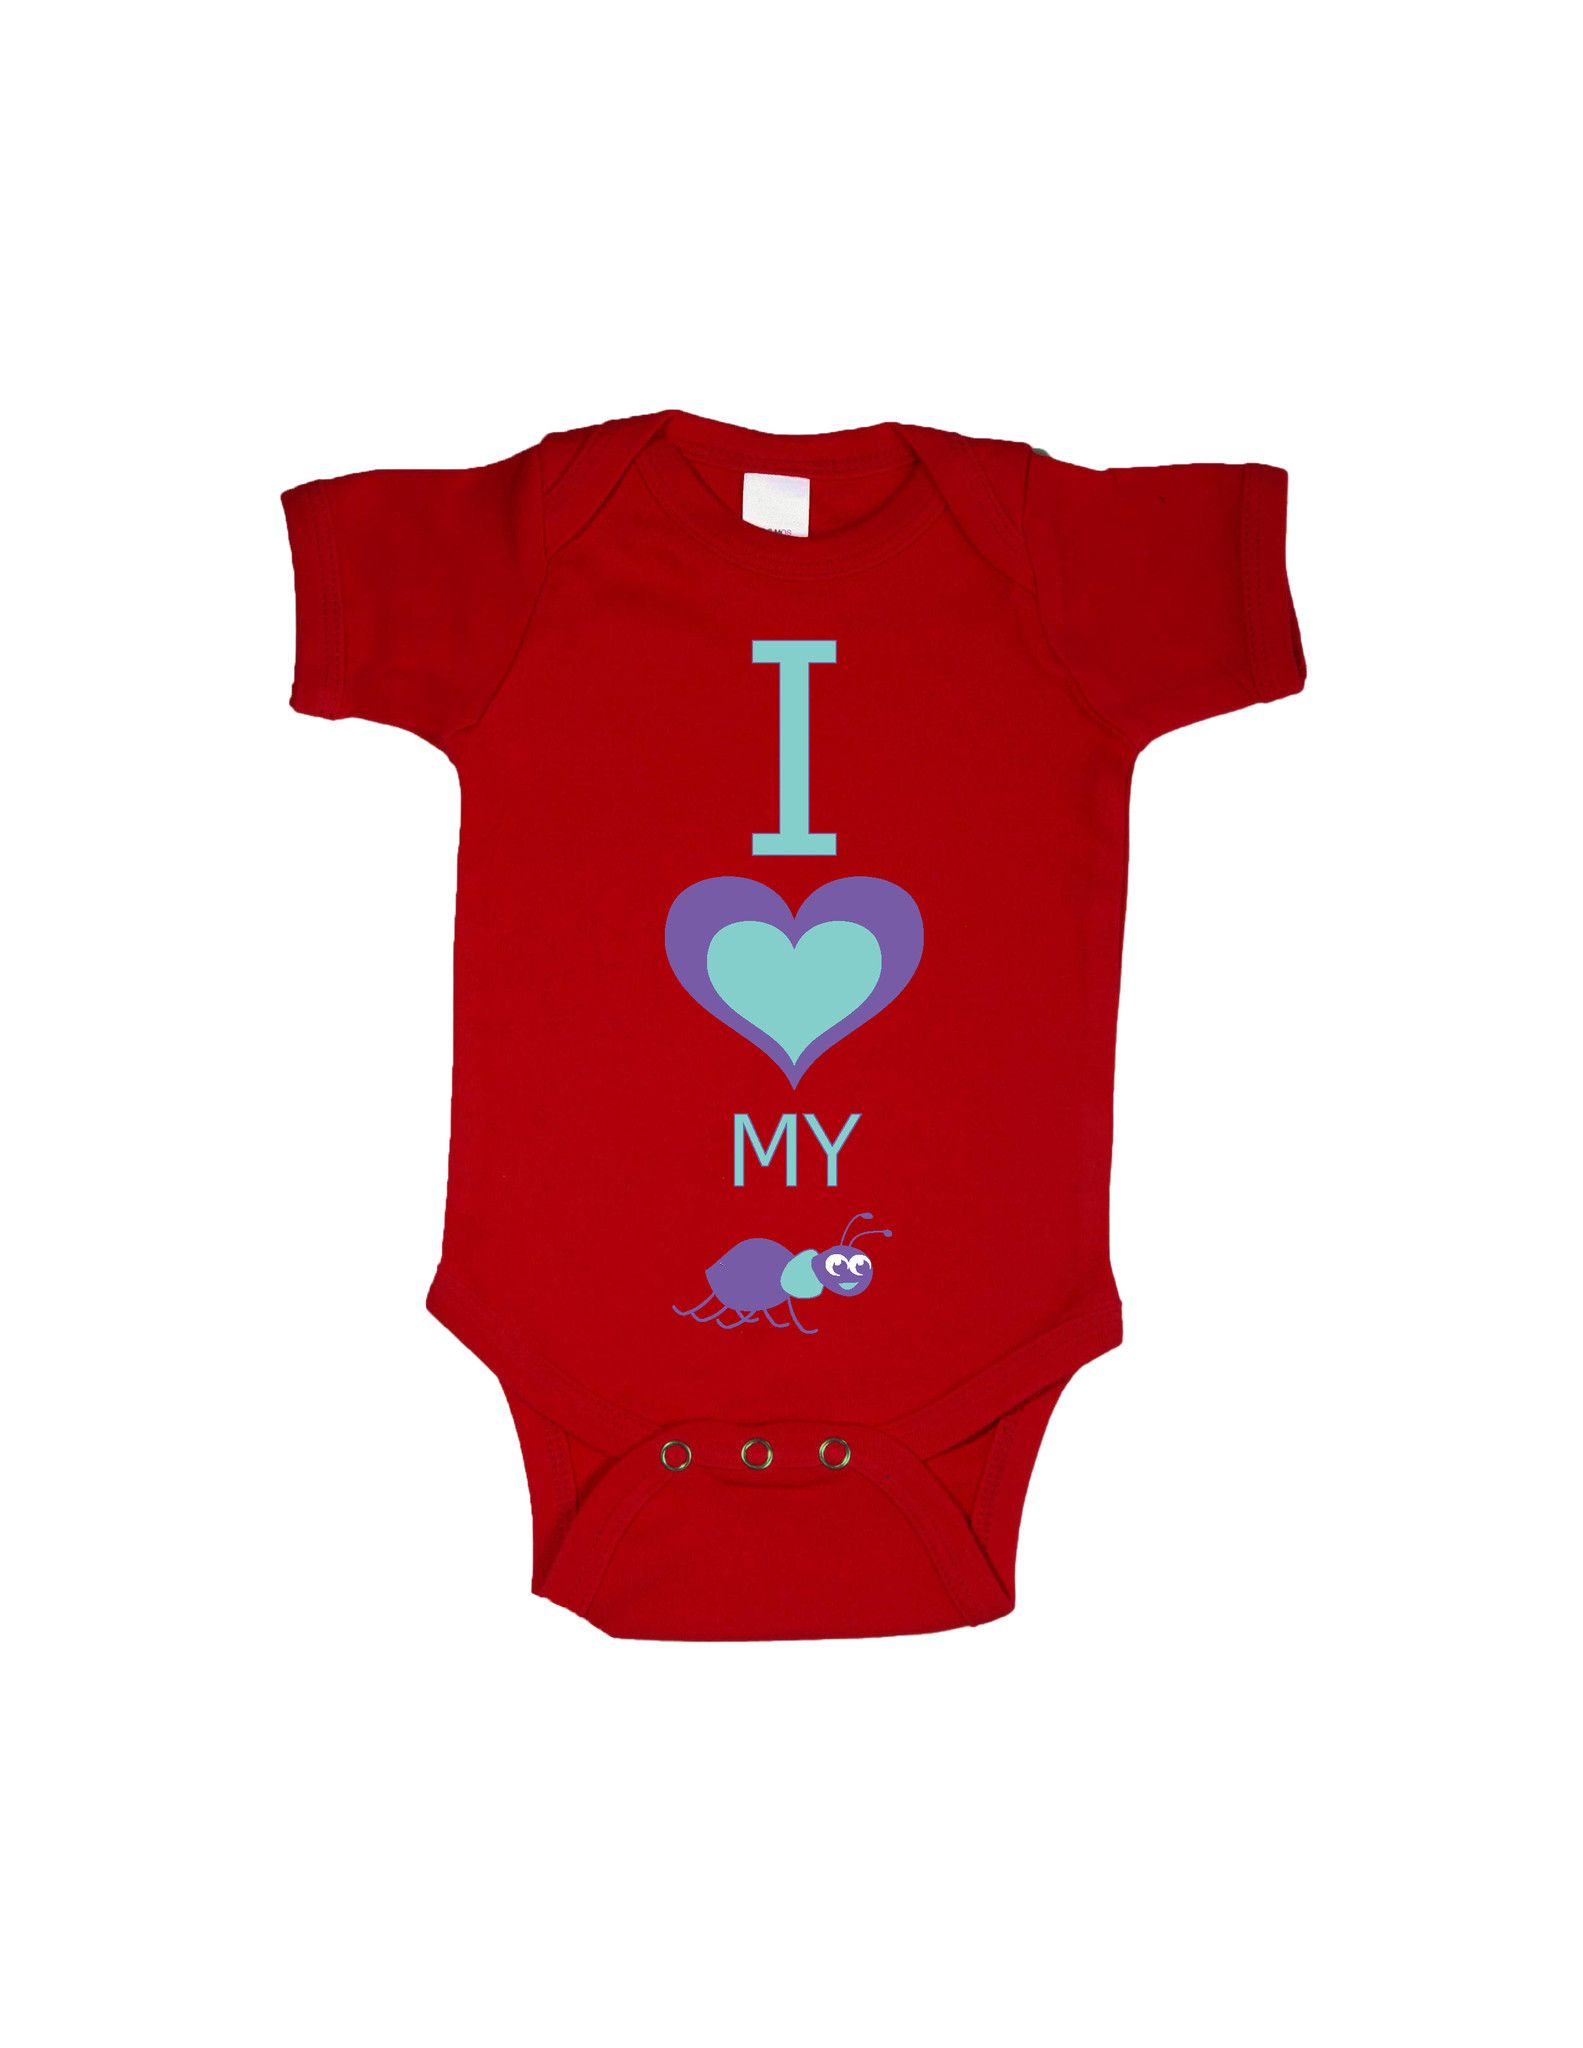 Baby Rompers with funny quotes 10 Free shipping